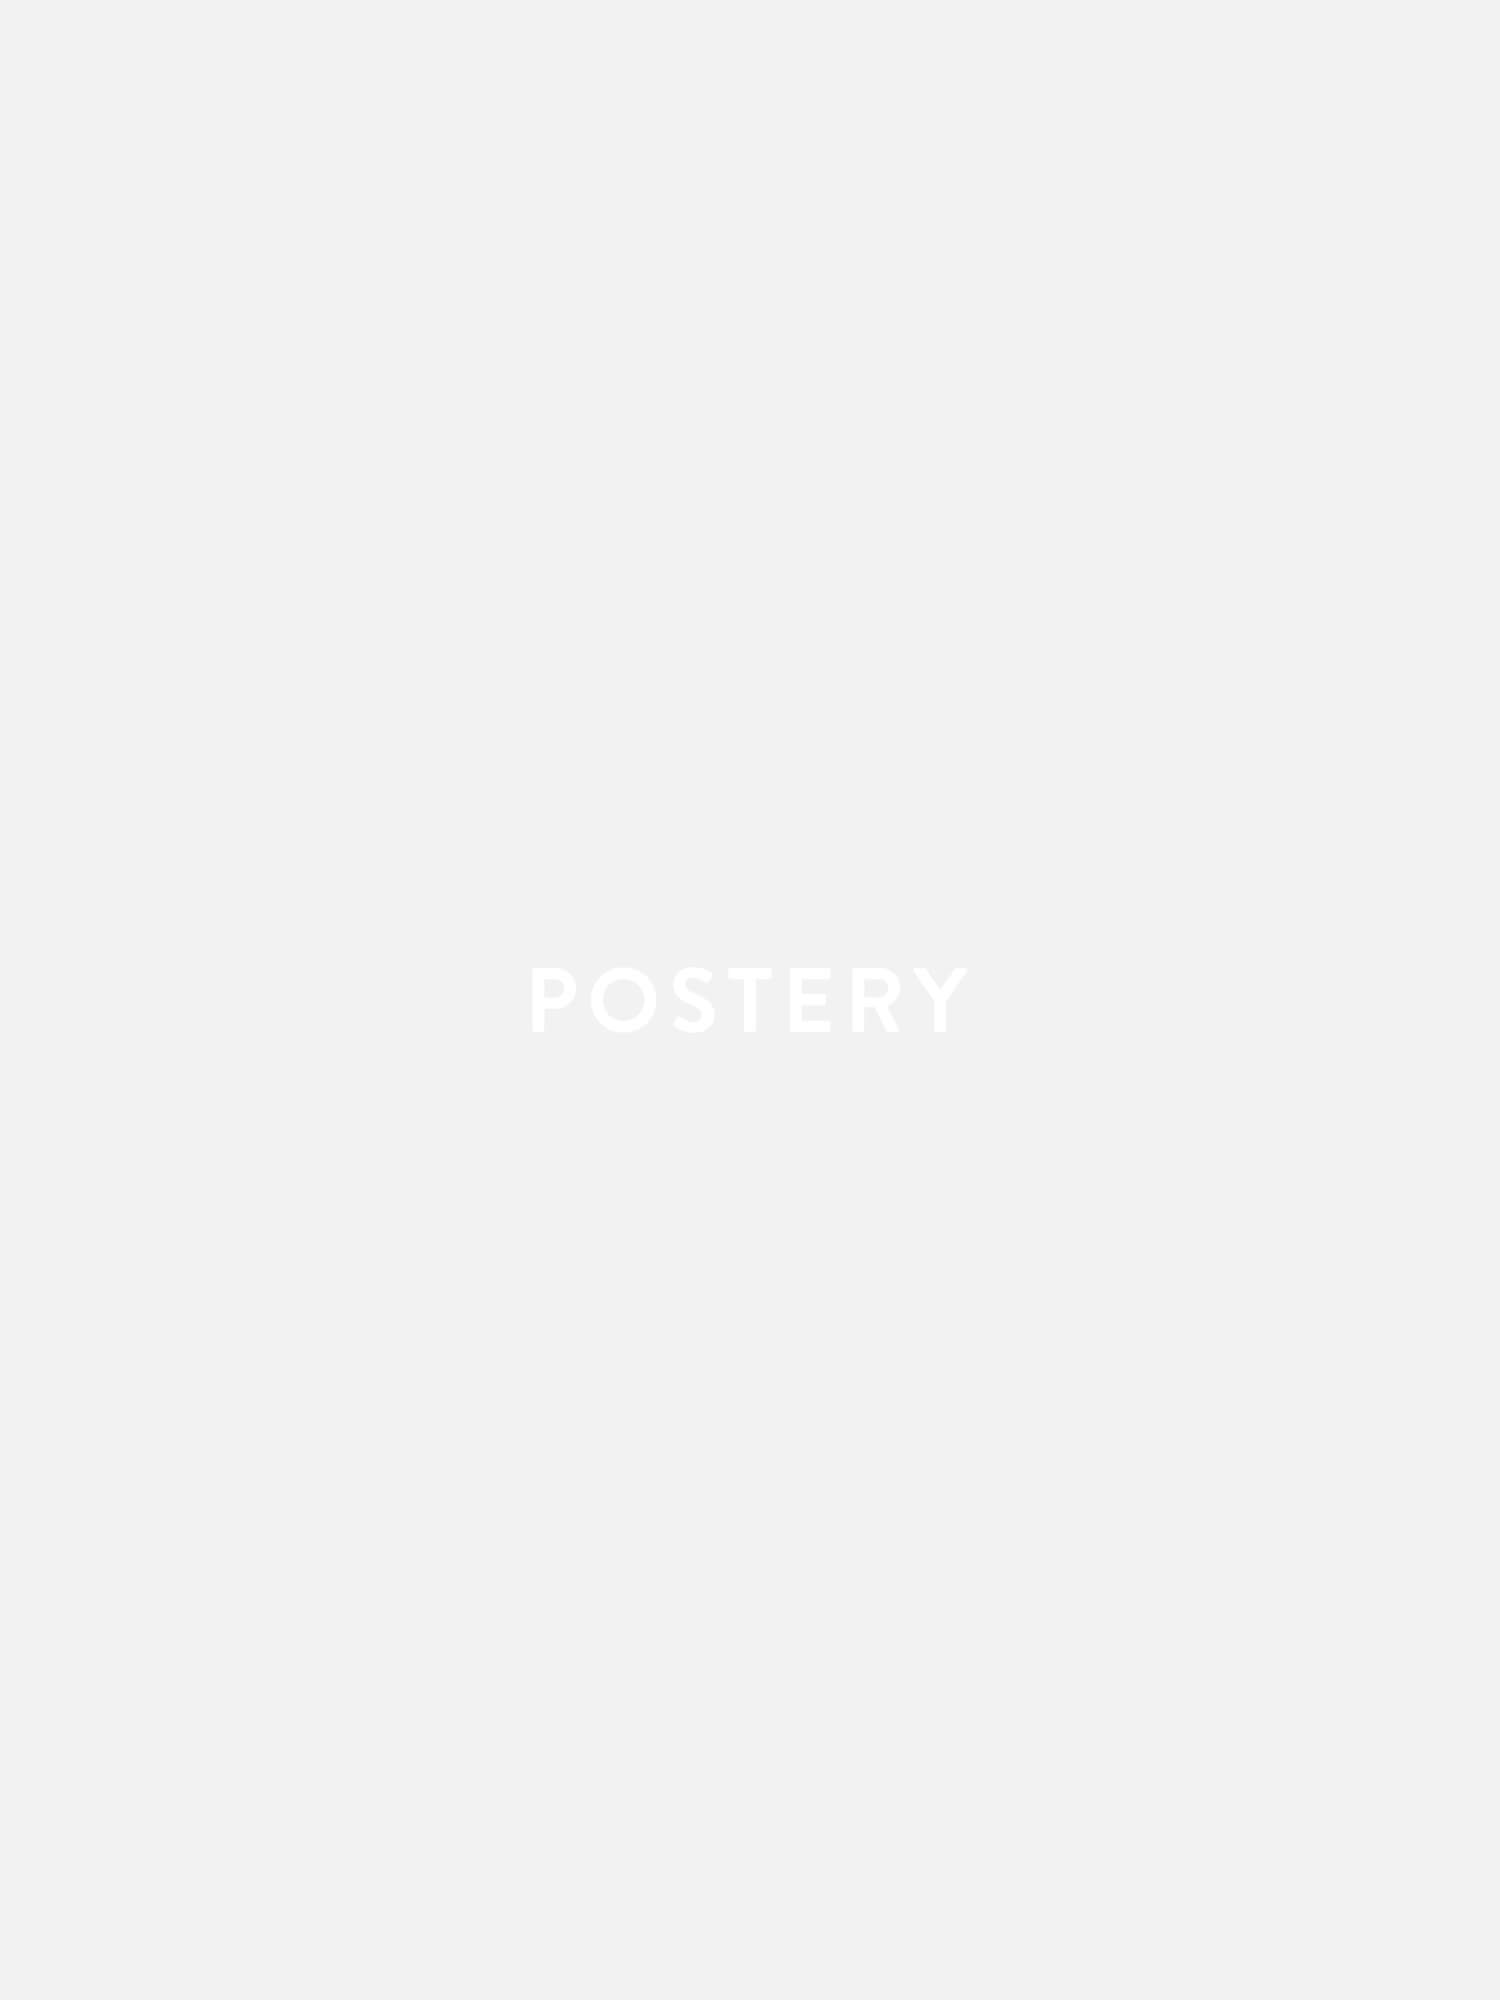 Gallery Wall #6898